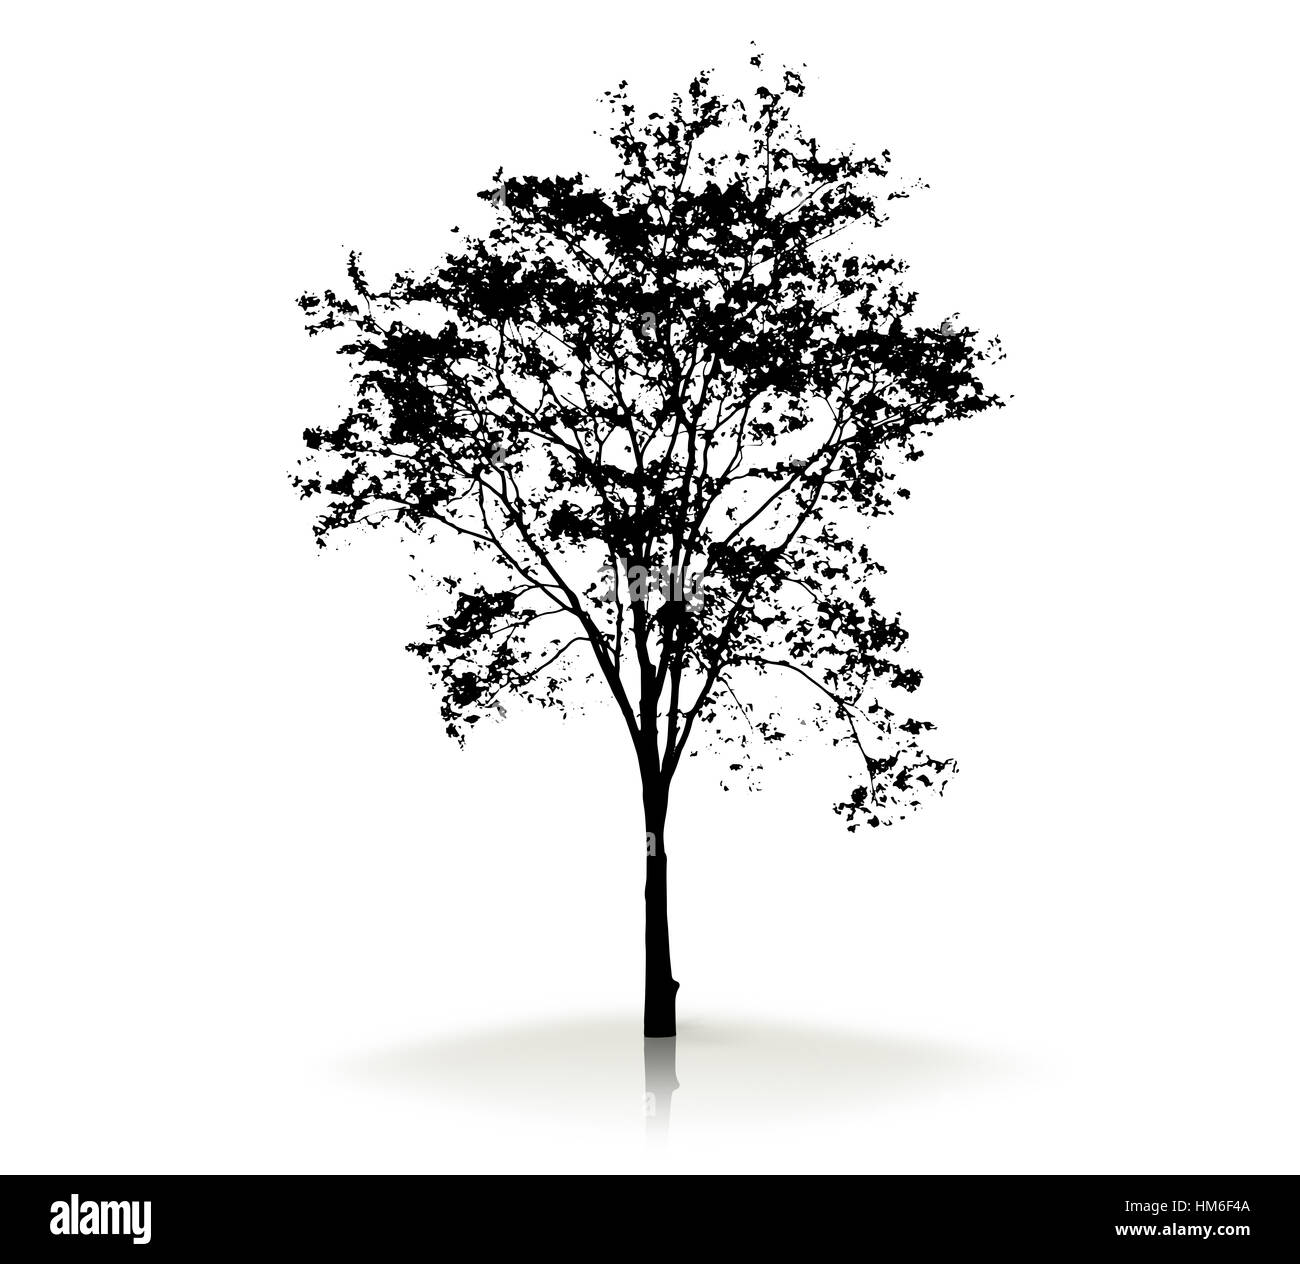 Tree silhouette on white background - Stock Image